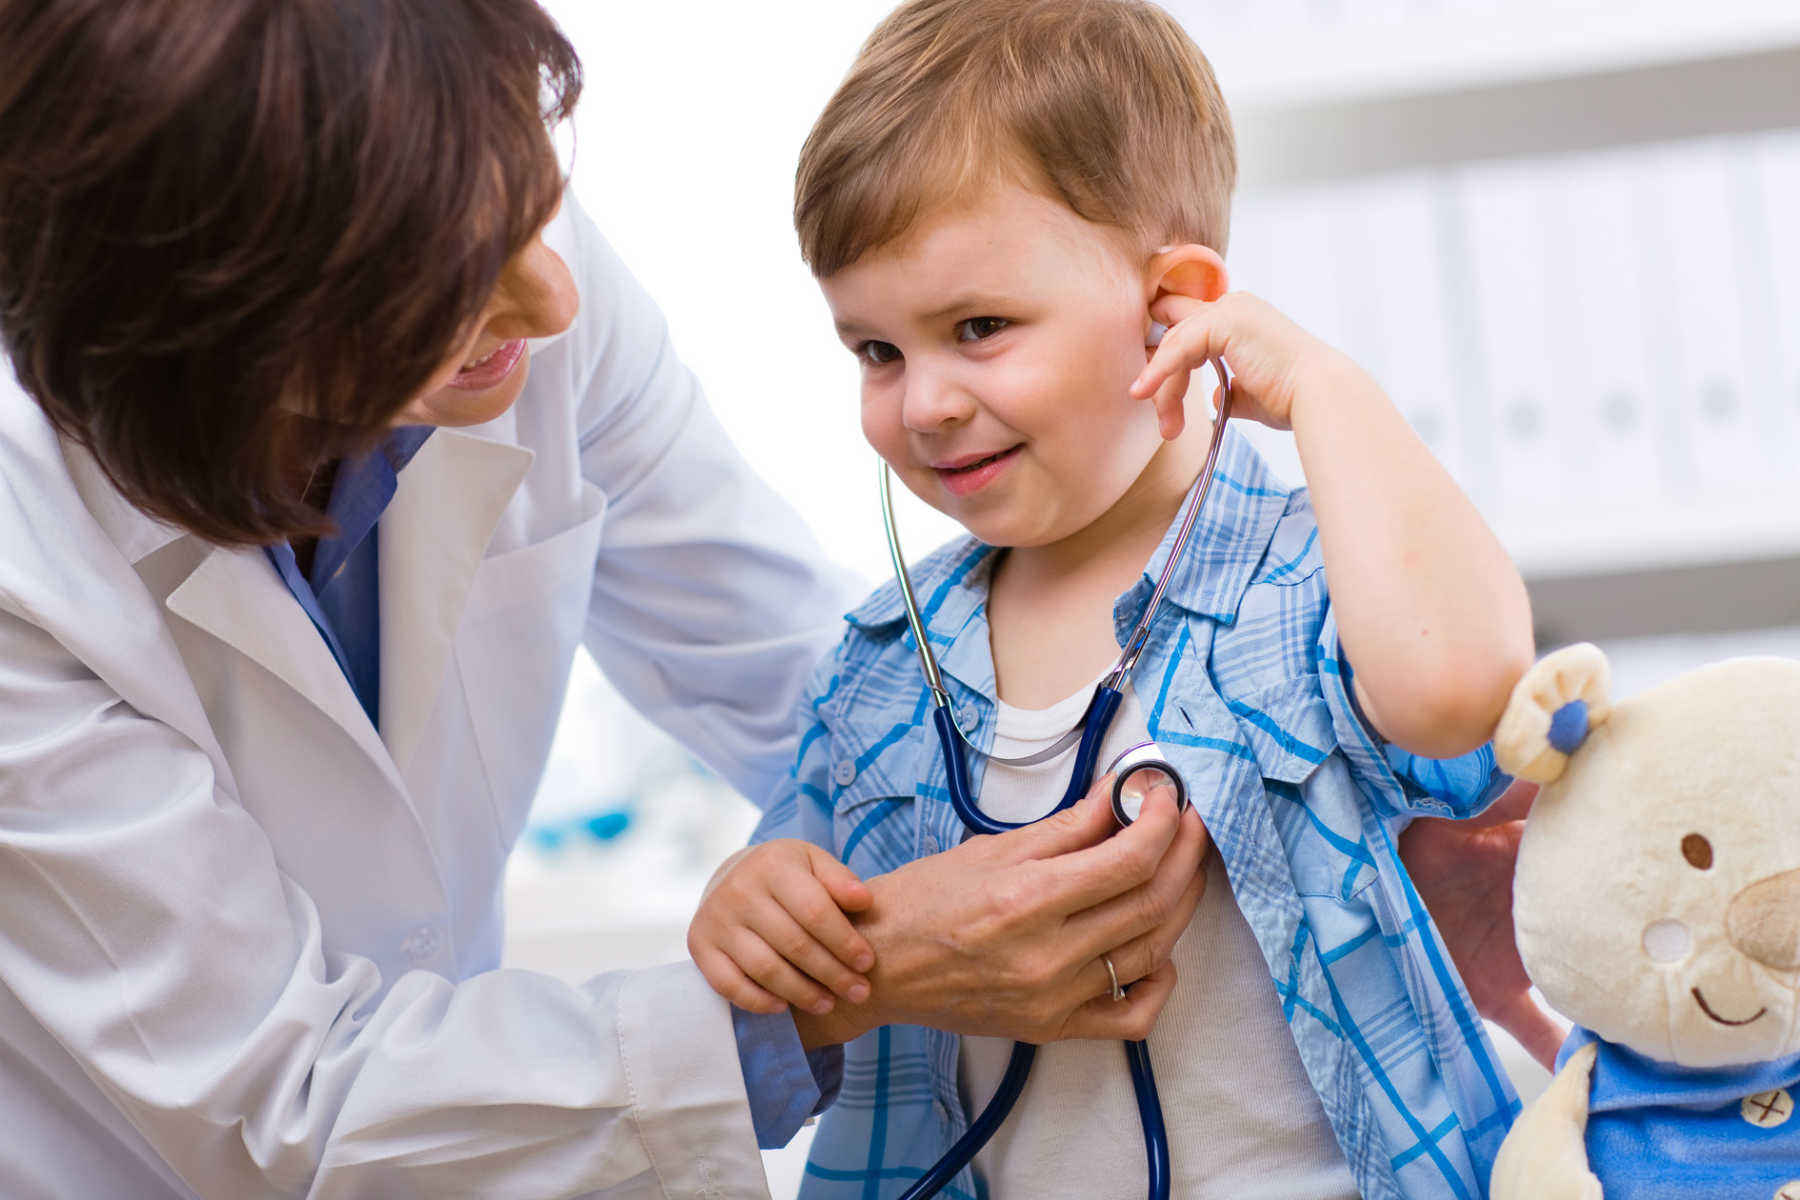 A child receiving medical care from a physician.